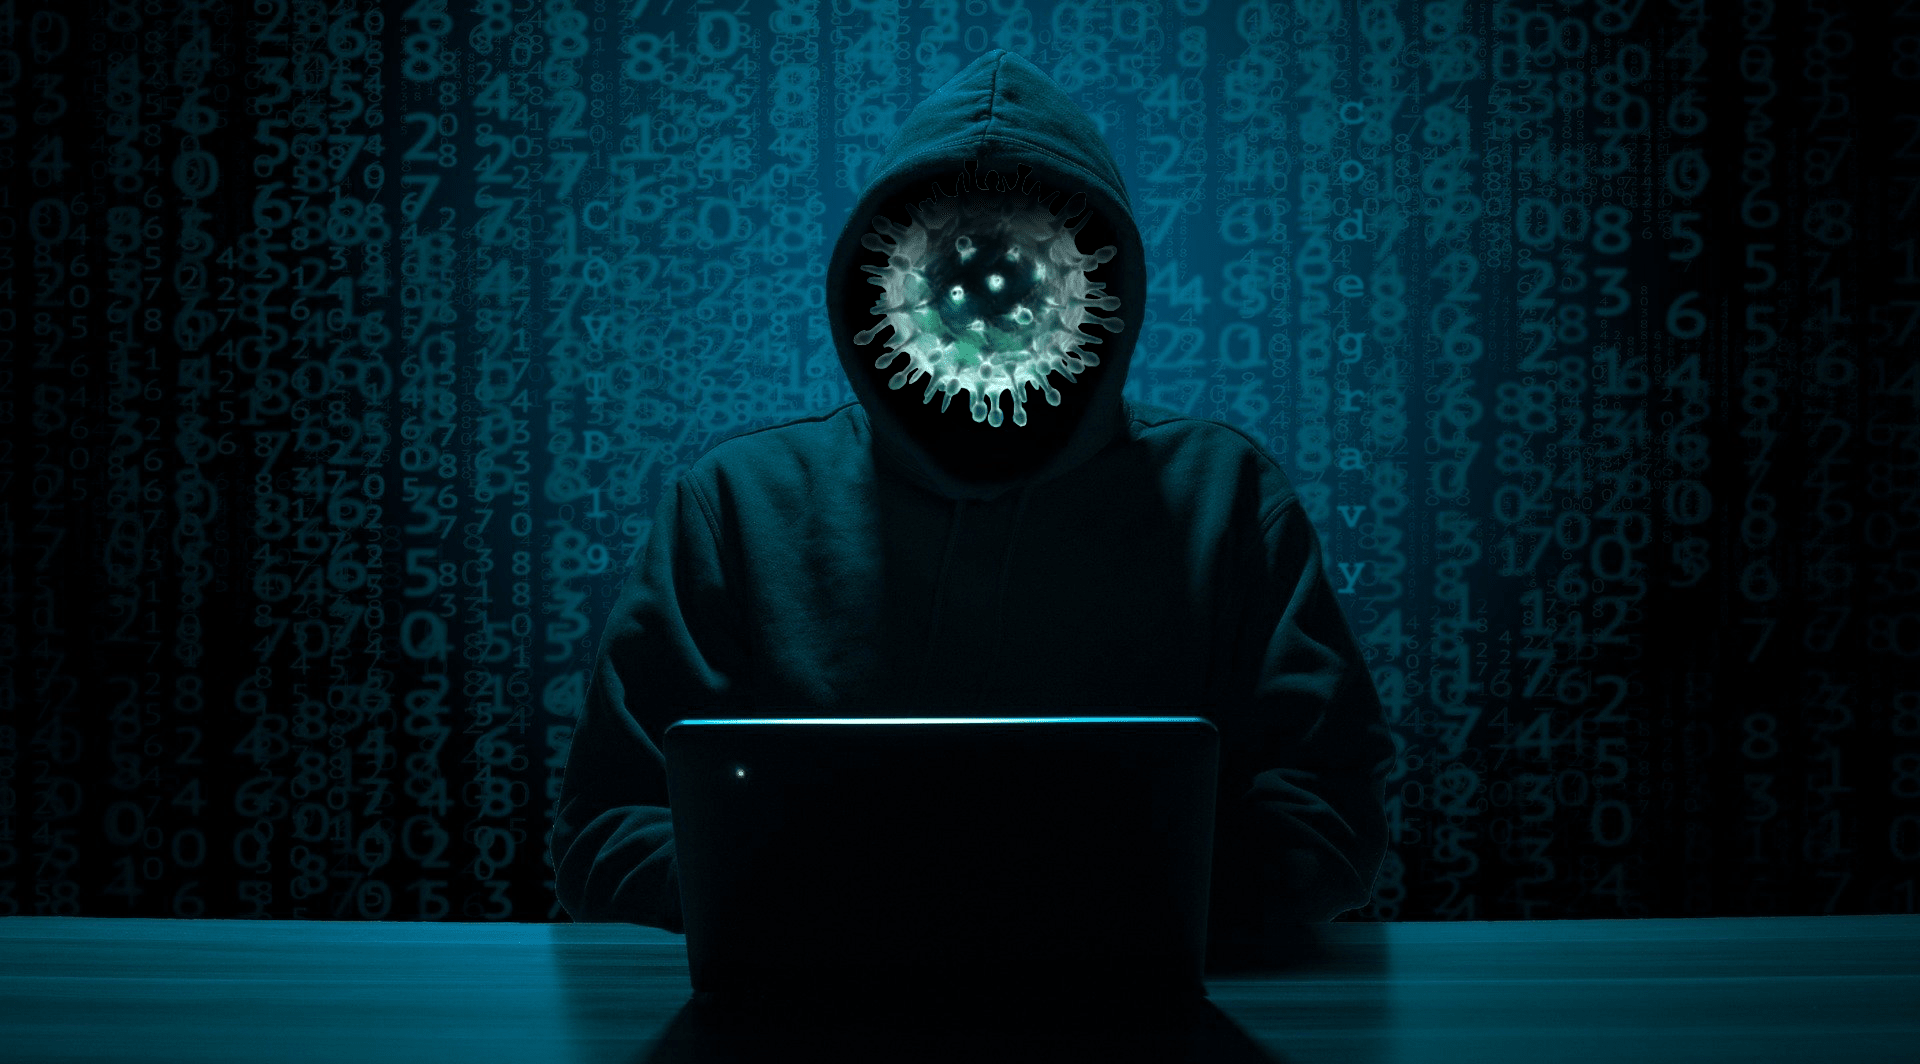 BREAKING: Your computer might be infected with coronavirus